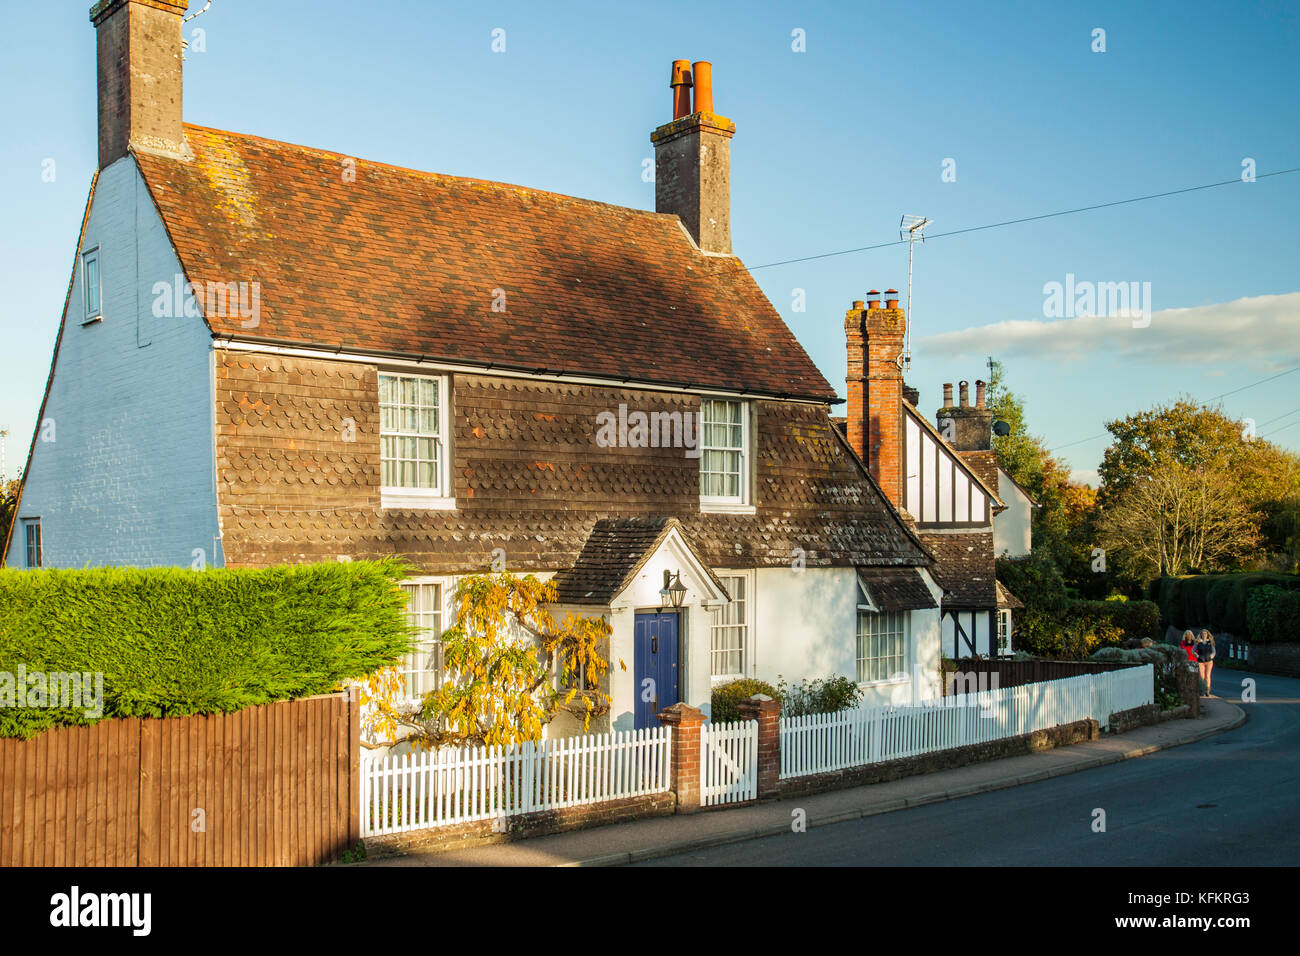 Picturesque cottage in Hurstpierpoint, West Sussex, England. - Stock Image